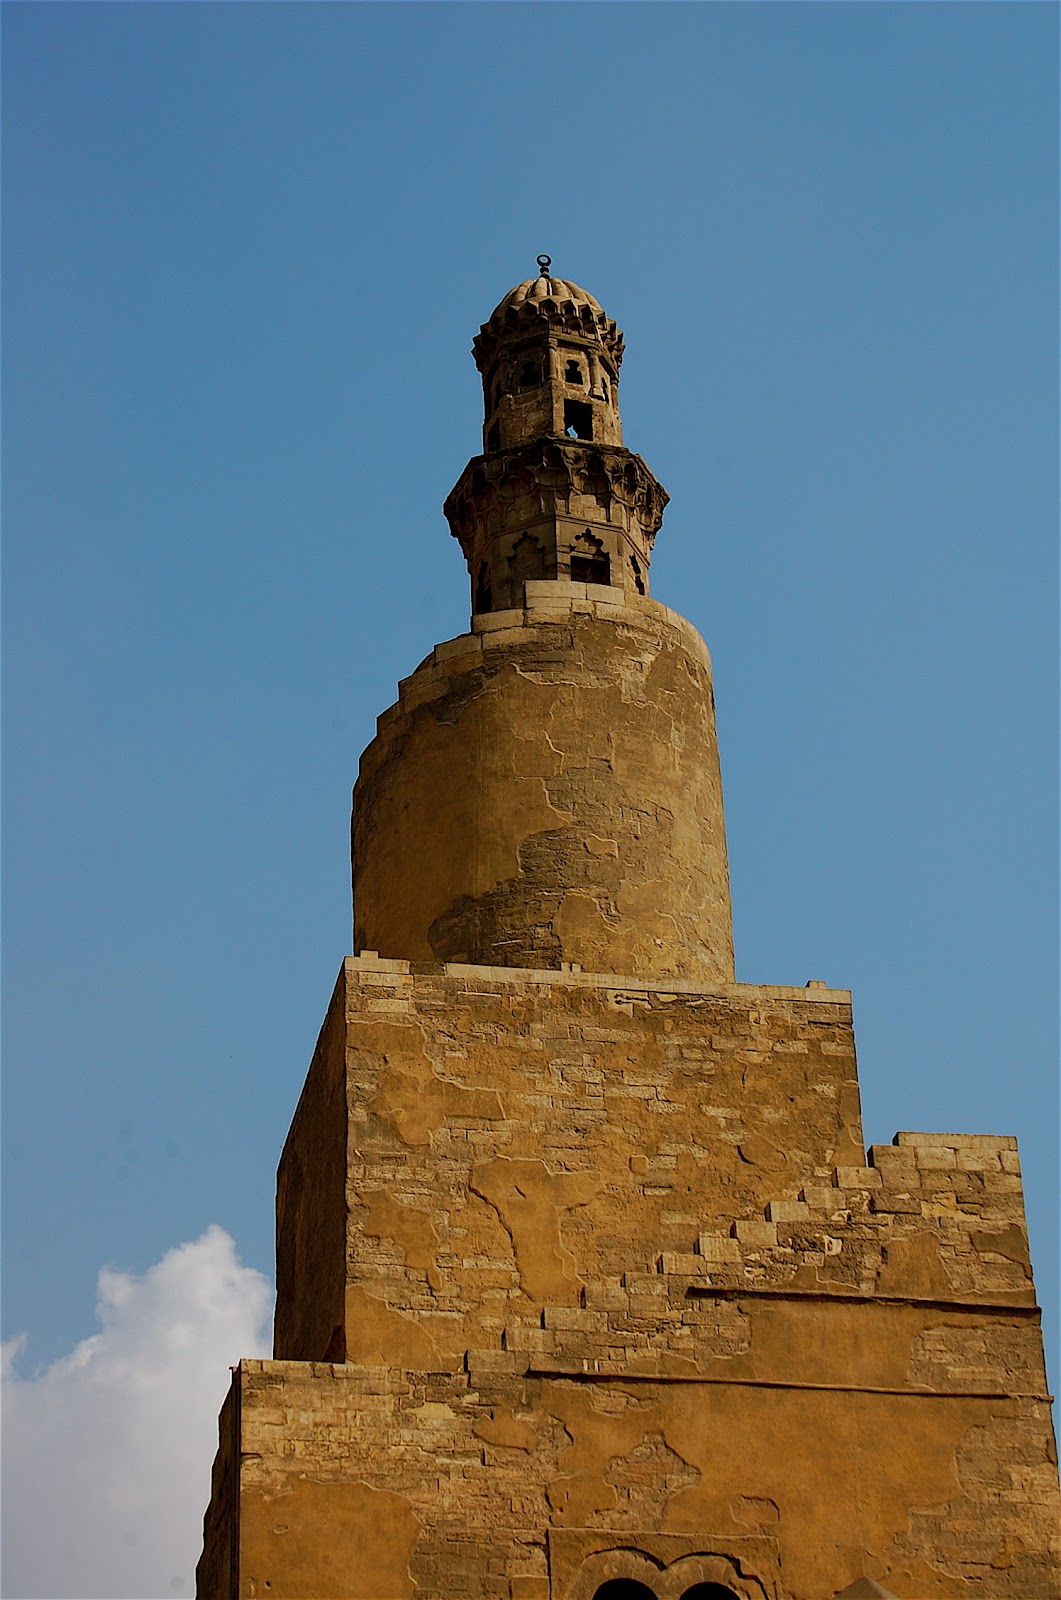 Close-up of the minaret. (Photo by author)